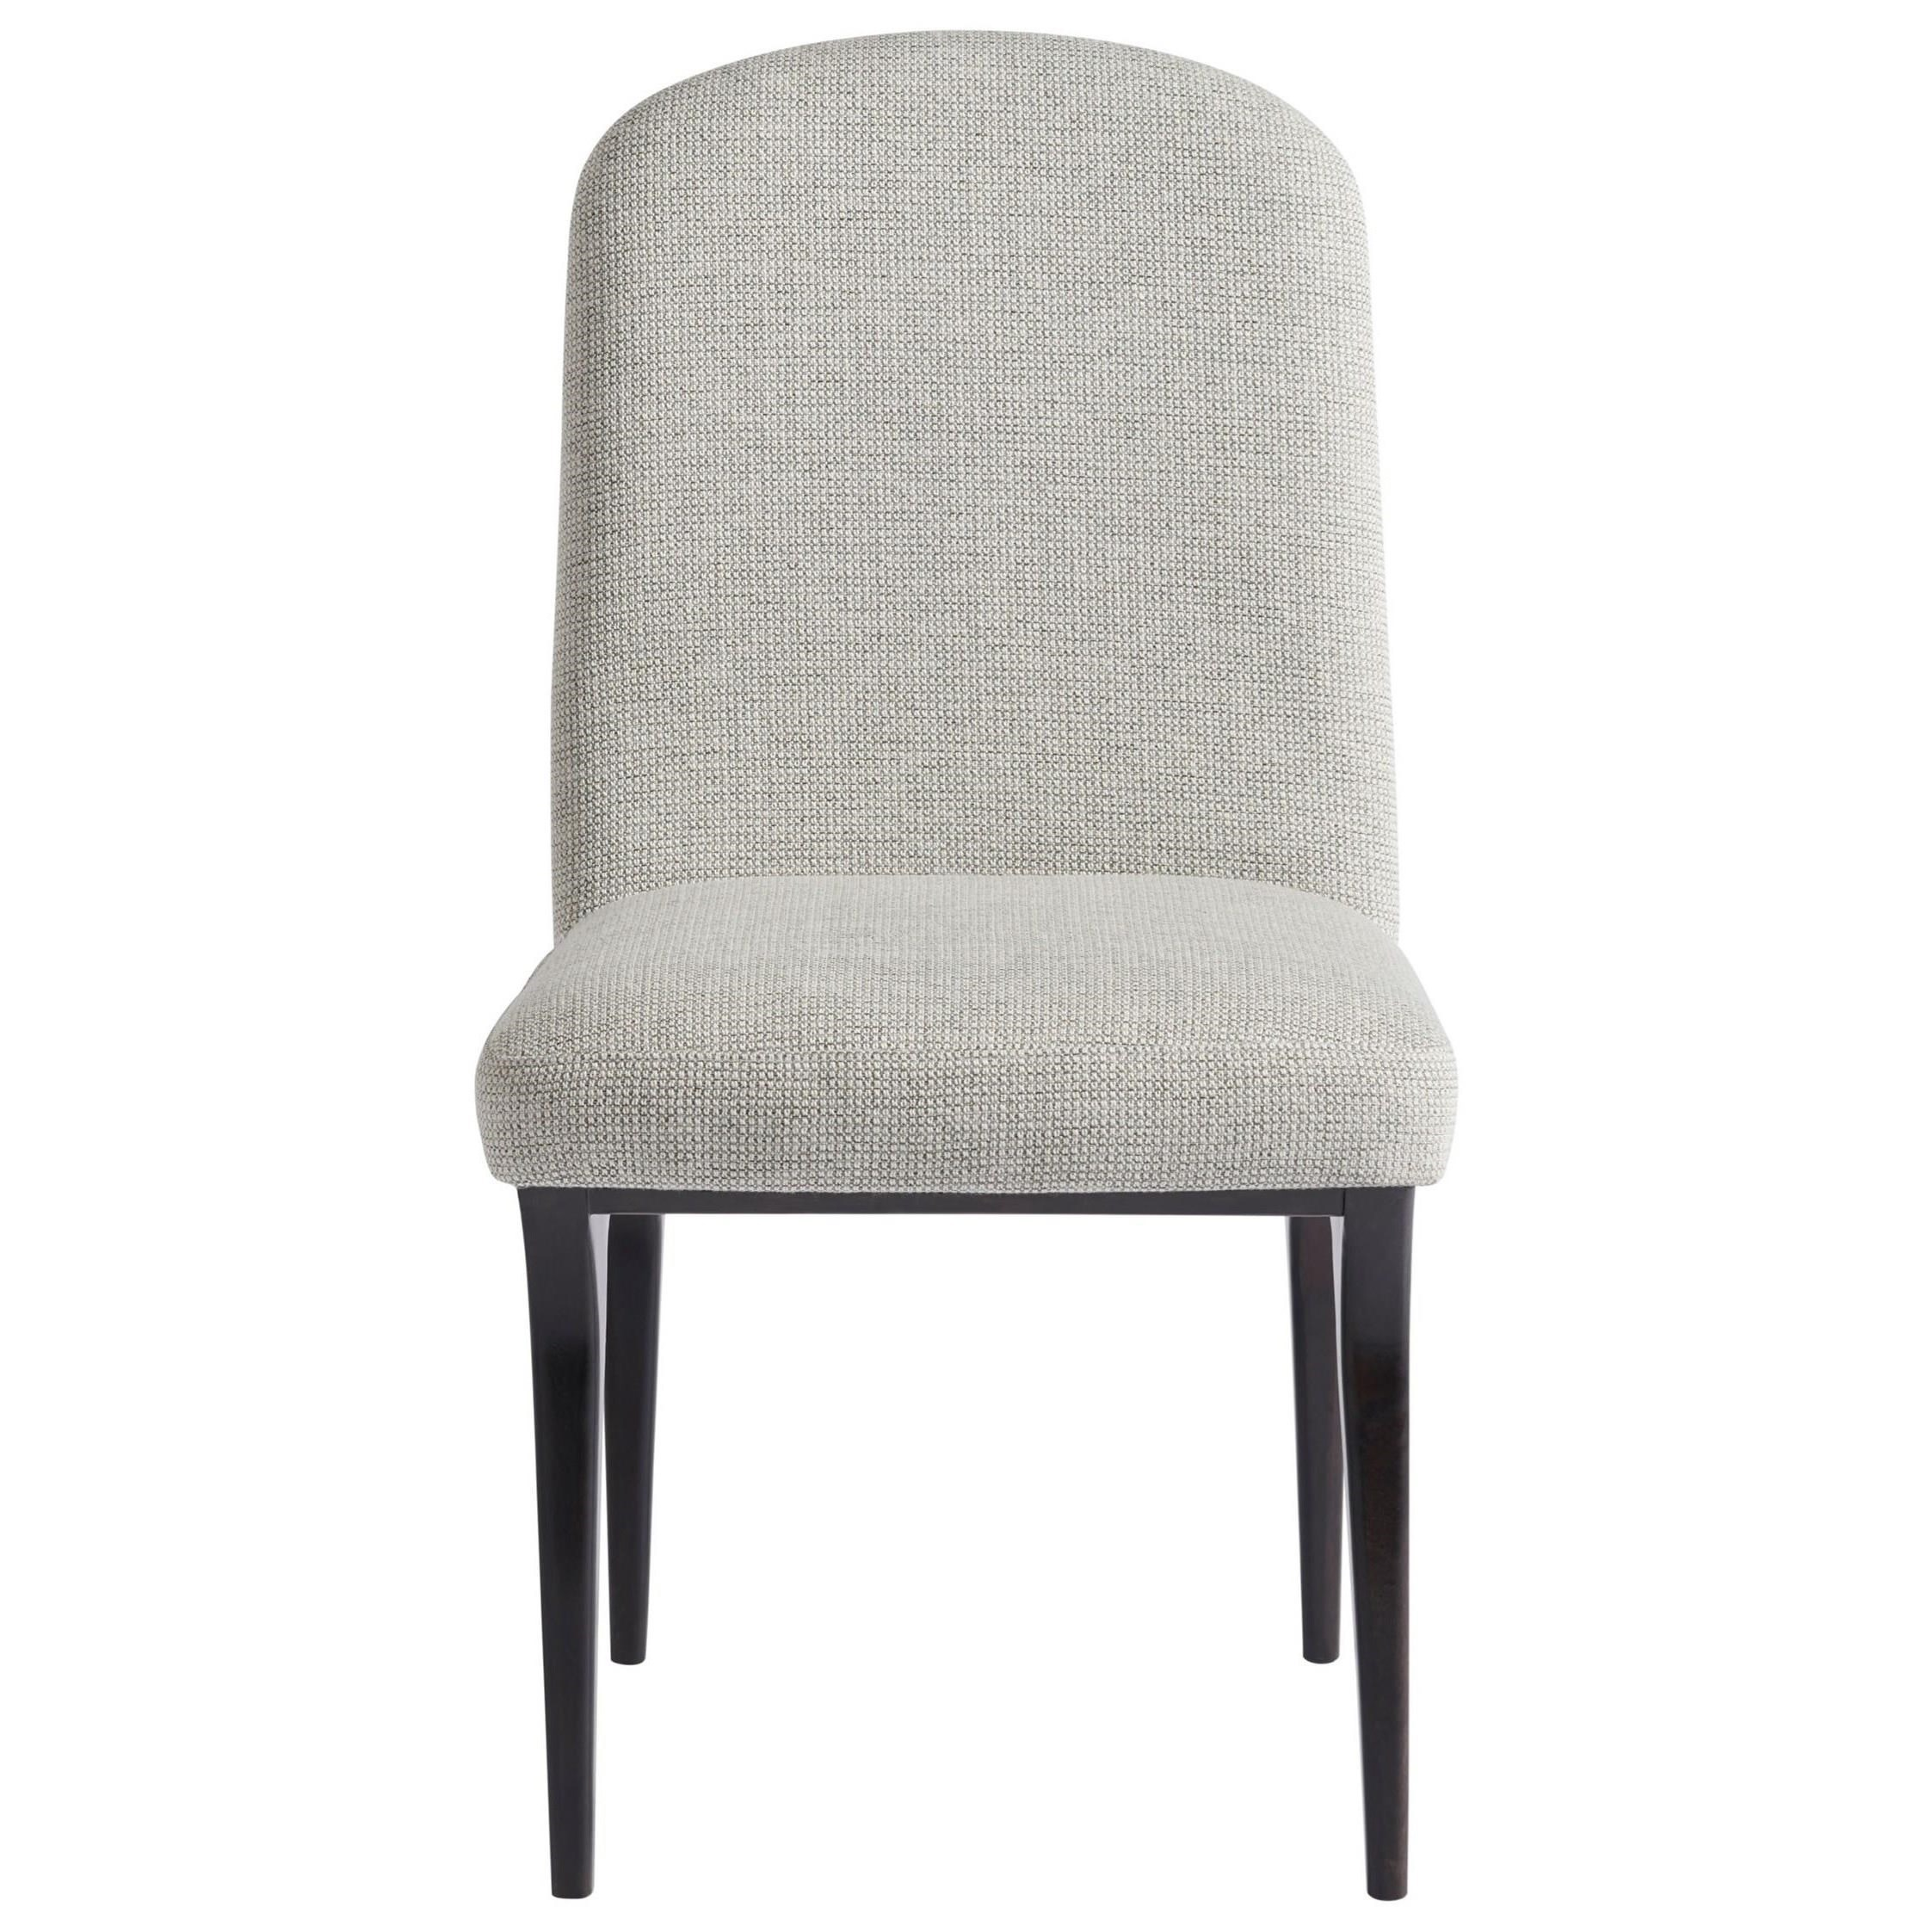 Nina Magon 941 Yves Dining Side Chair by Universal at Baer's Furniture